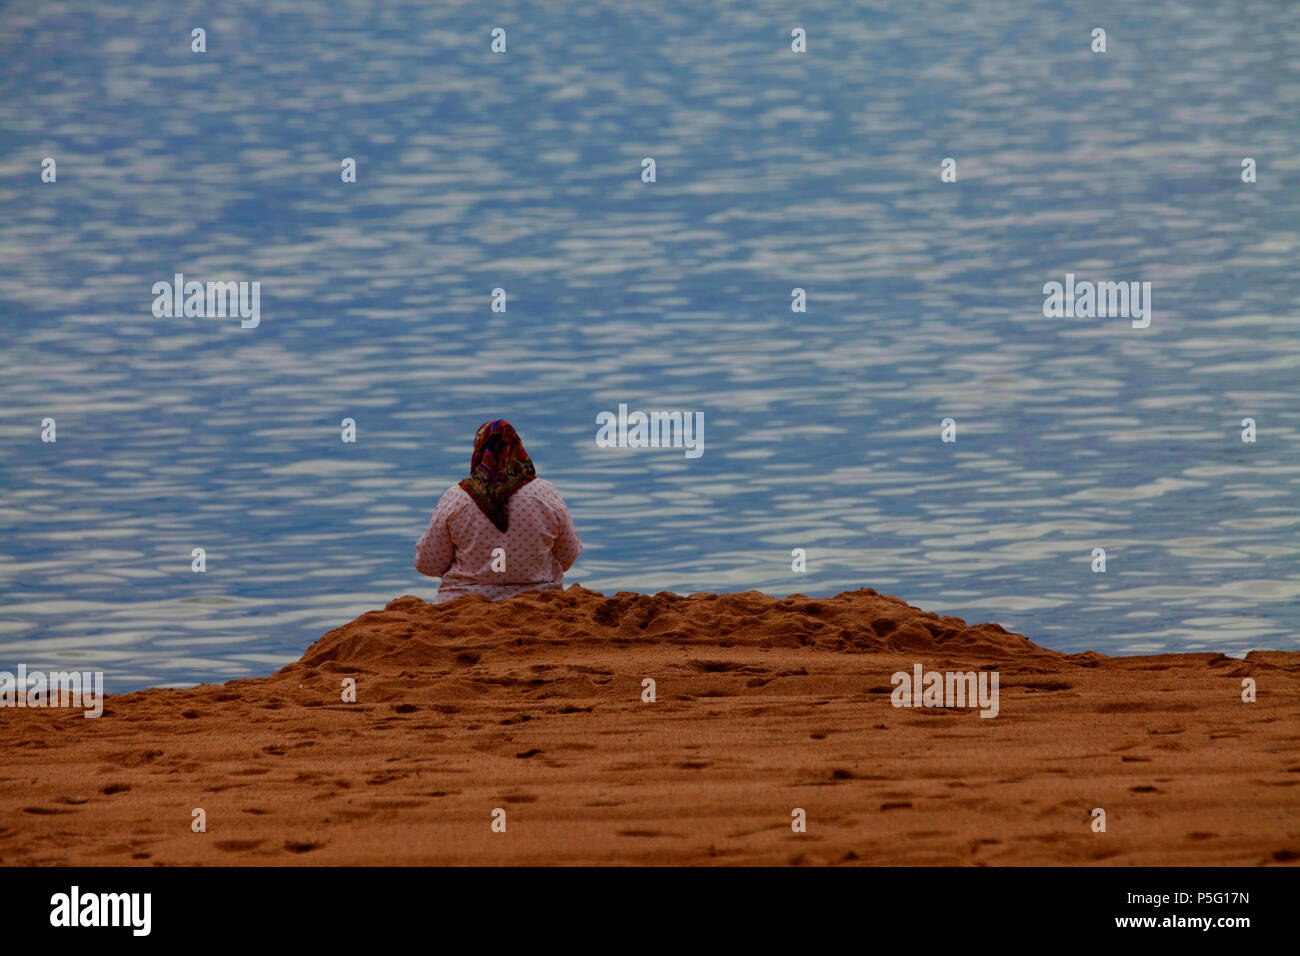 Woman by the Sea Stock Photo